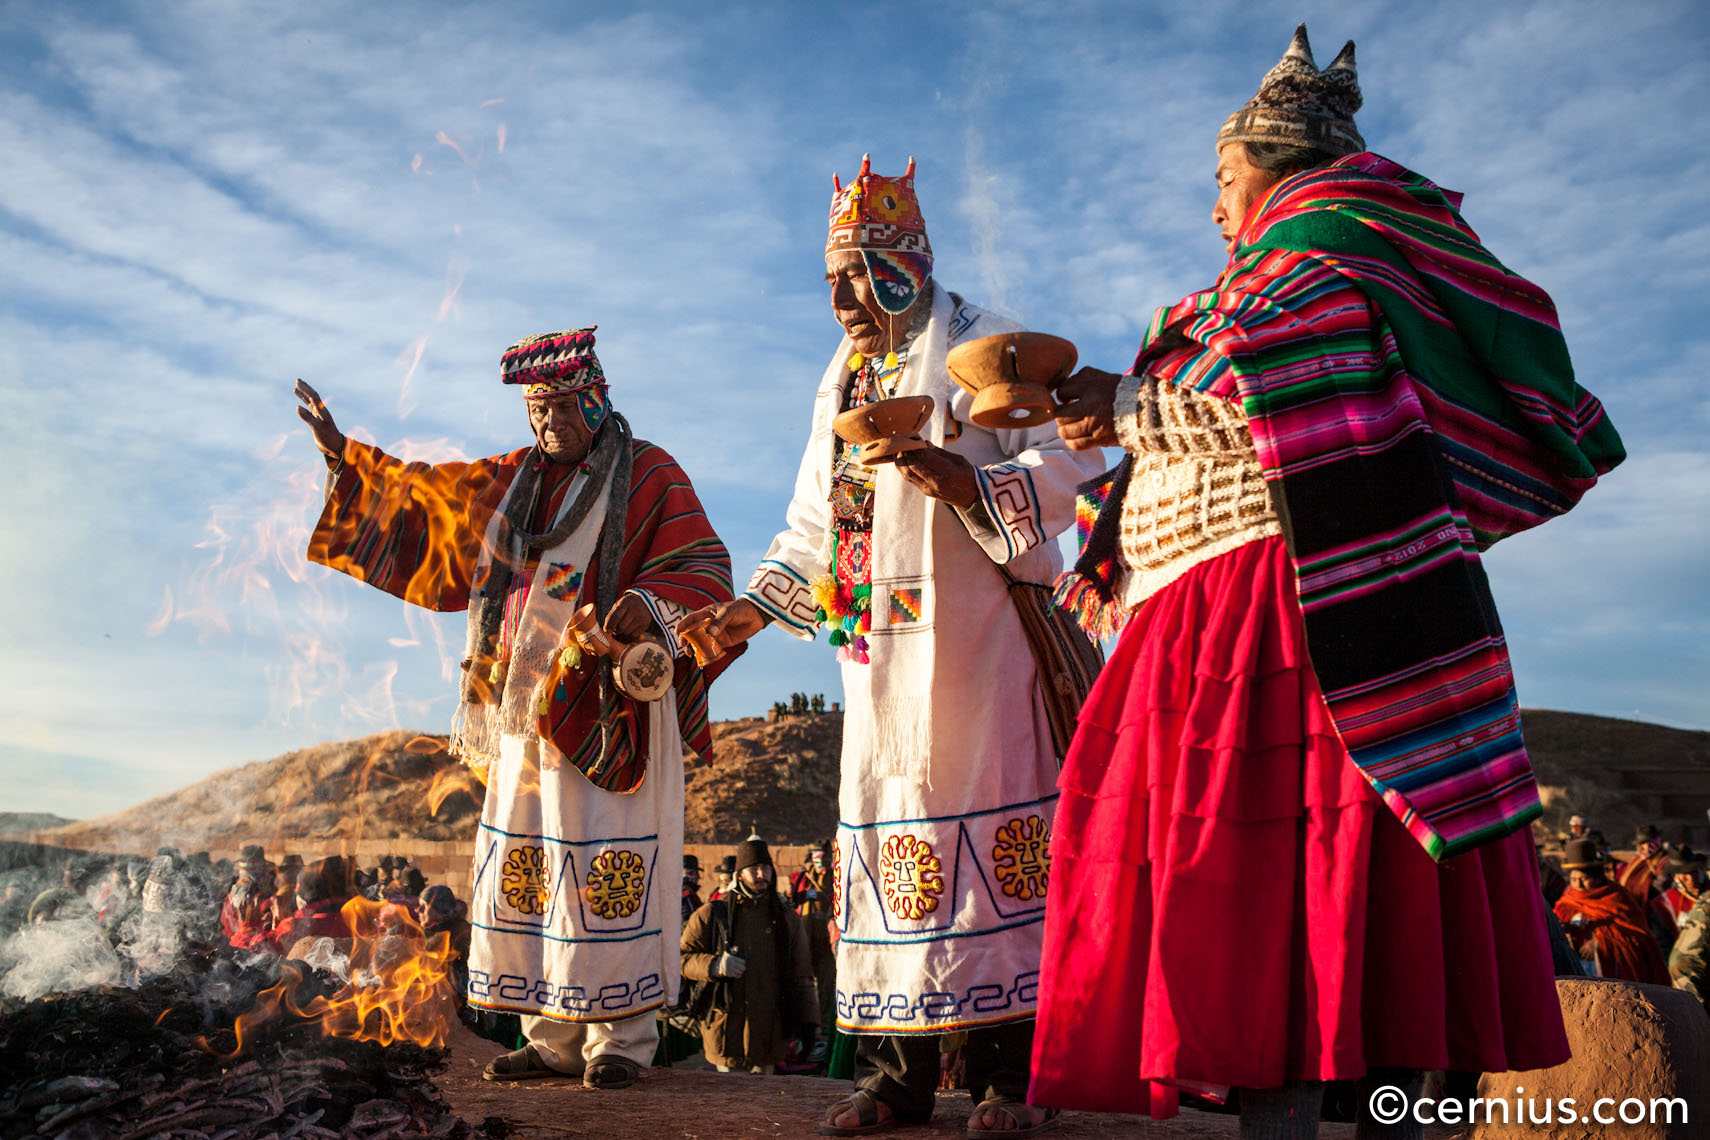 Solstice Celebrations in Bolivia, 2012 | Juozas Cernius